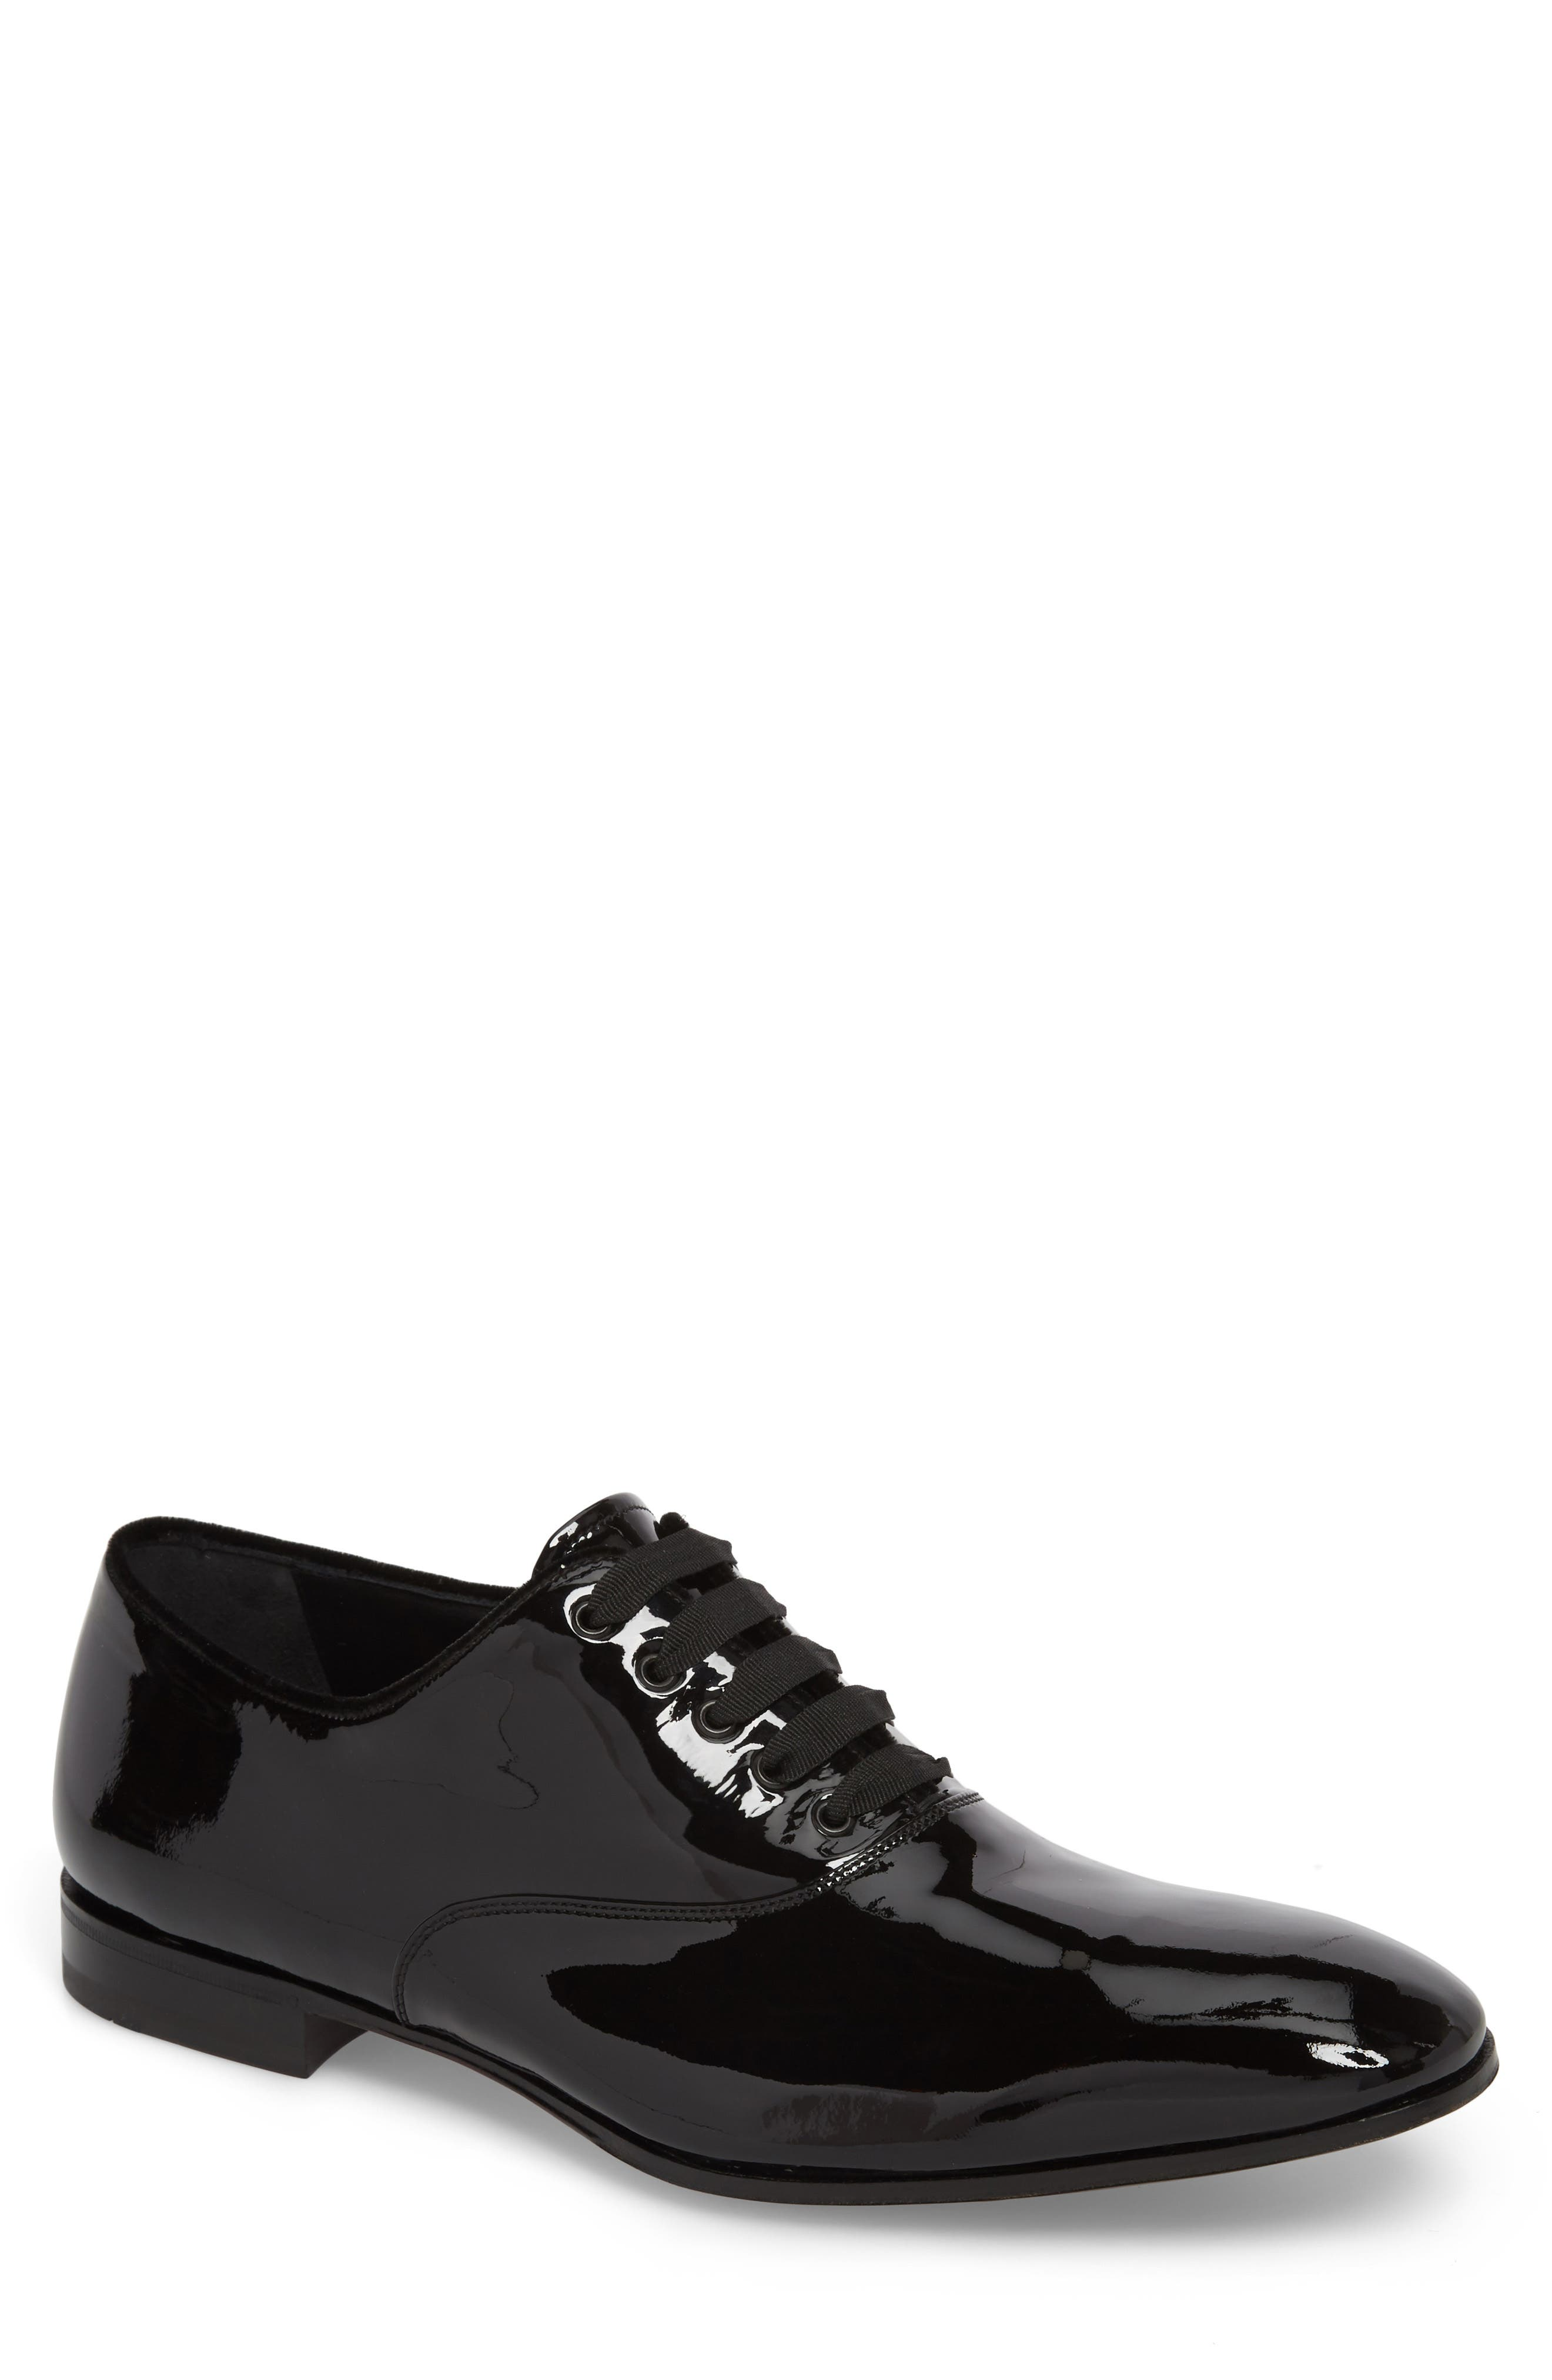 Belshaw Patent Oxford,                         Main,                         color, NERO PATENT LEATHER